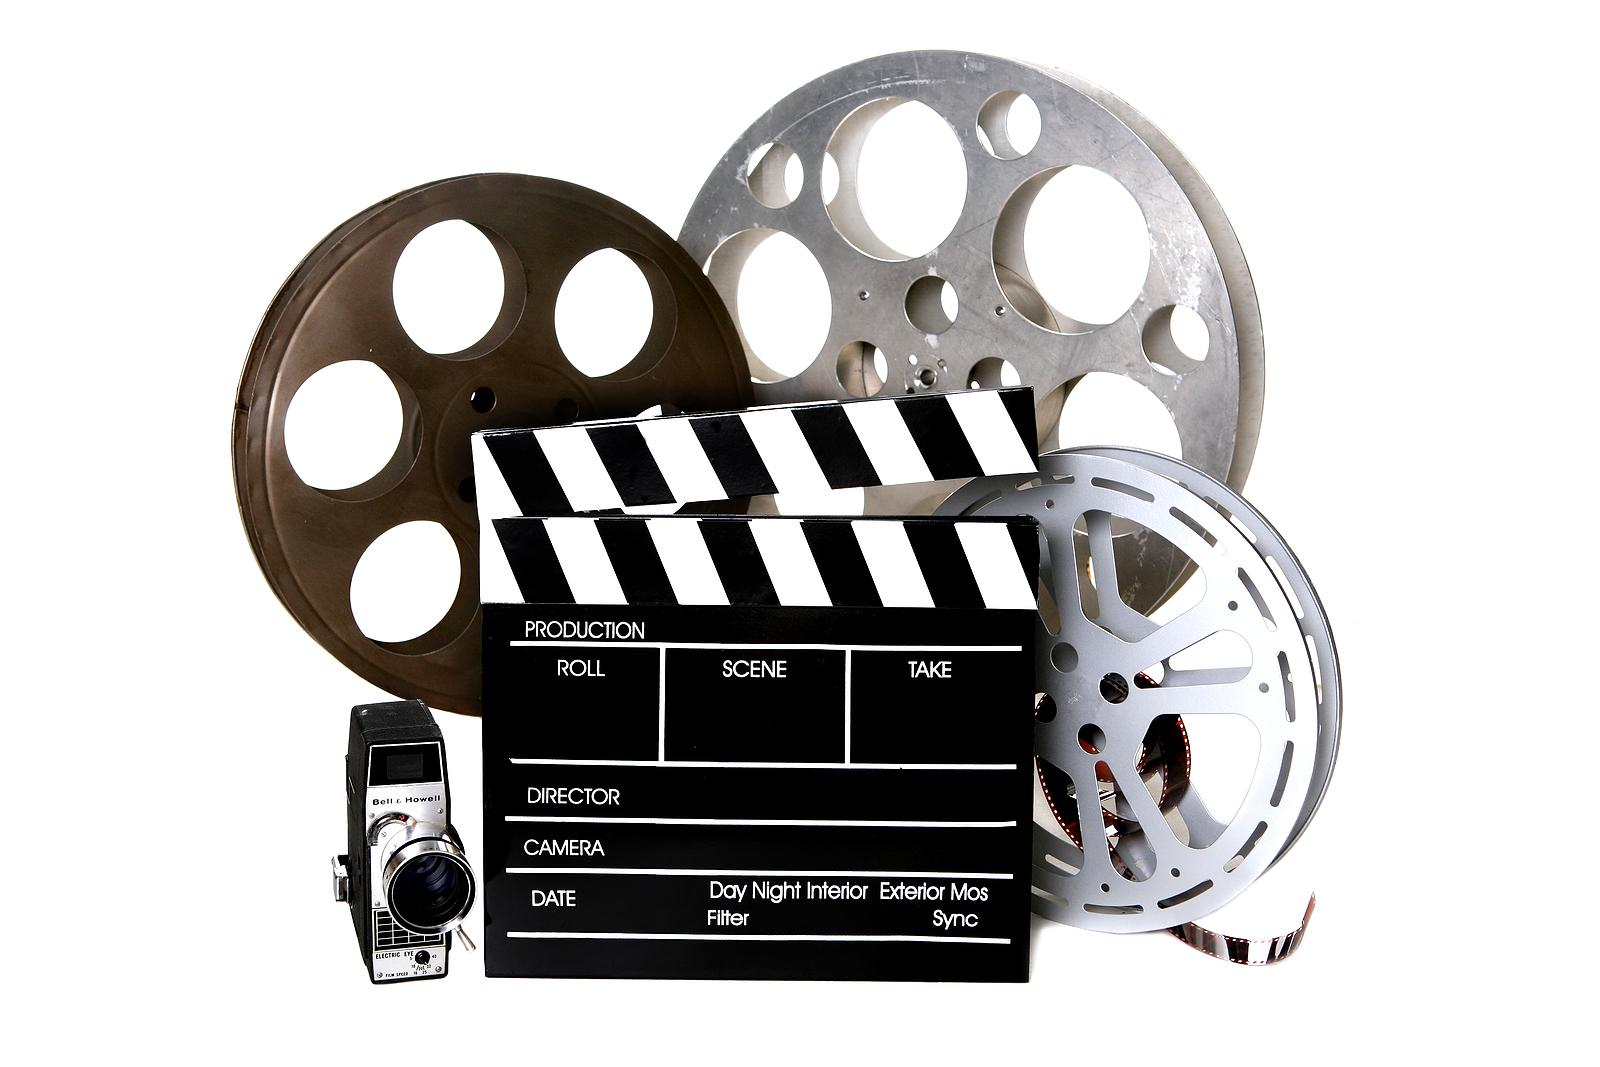 An assortment of film equipment.